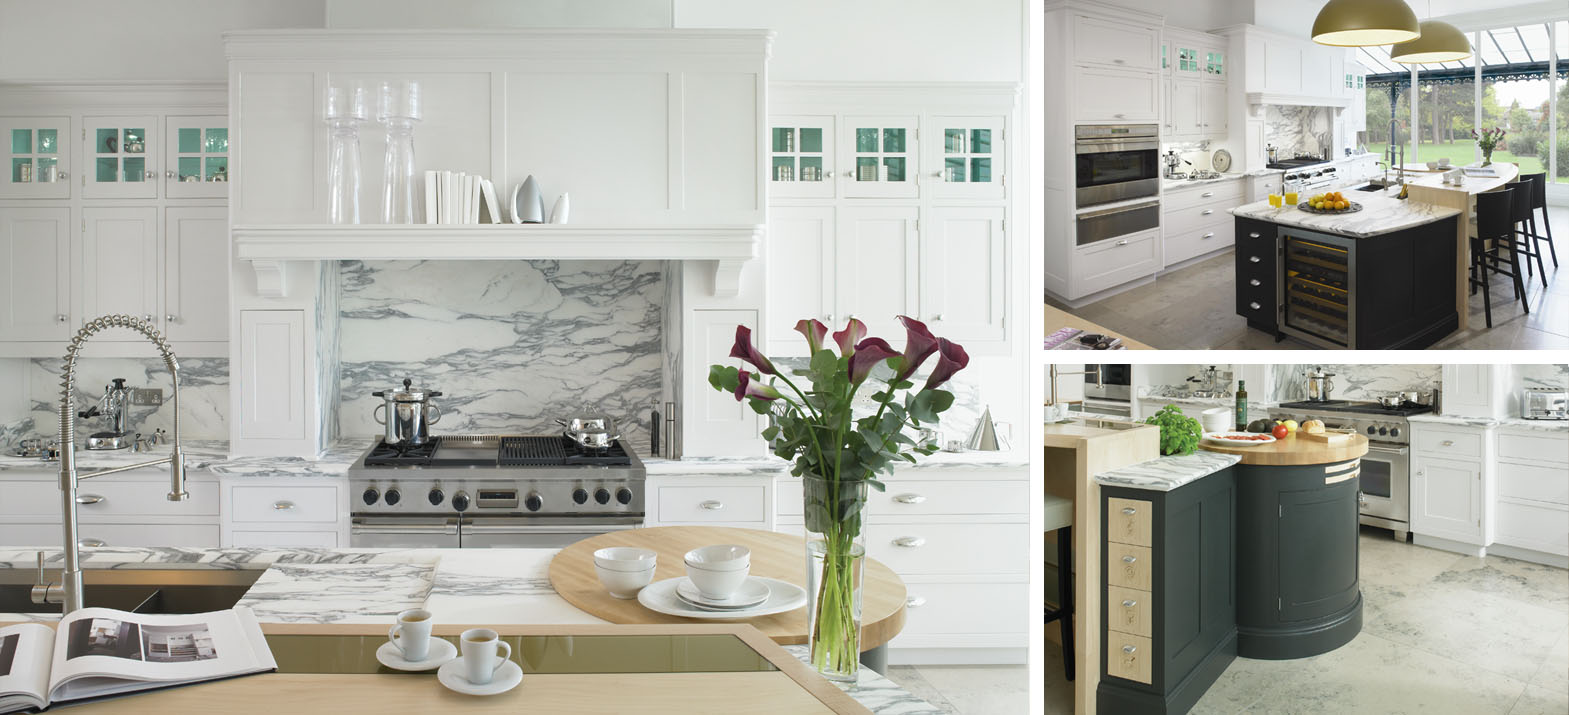 Kitchen Westbourne Grove Bespoke Luxury Furniture Luxury Kitchens By Mccarron And Company